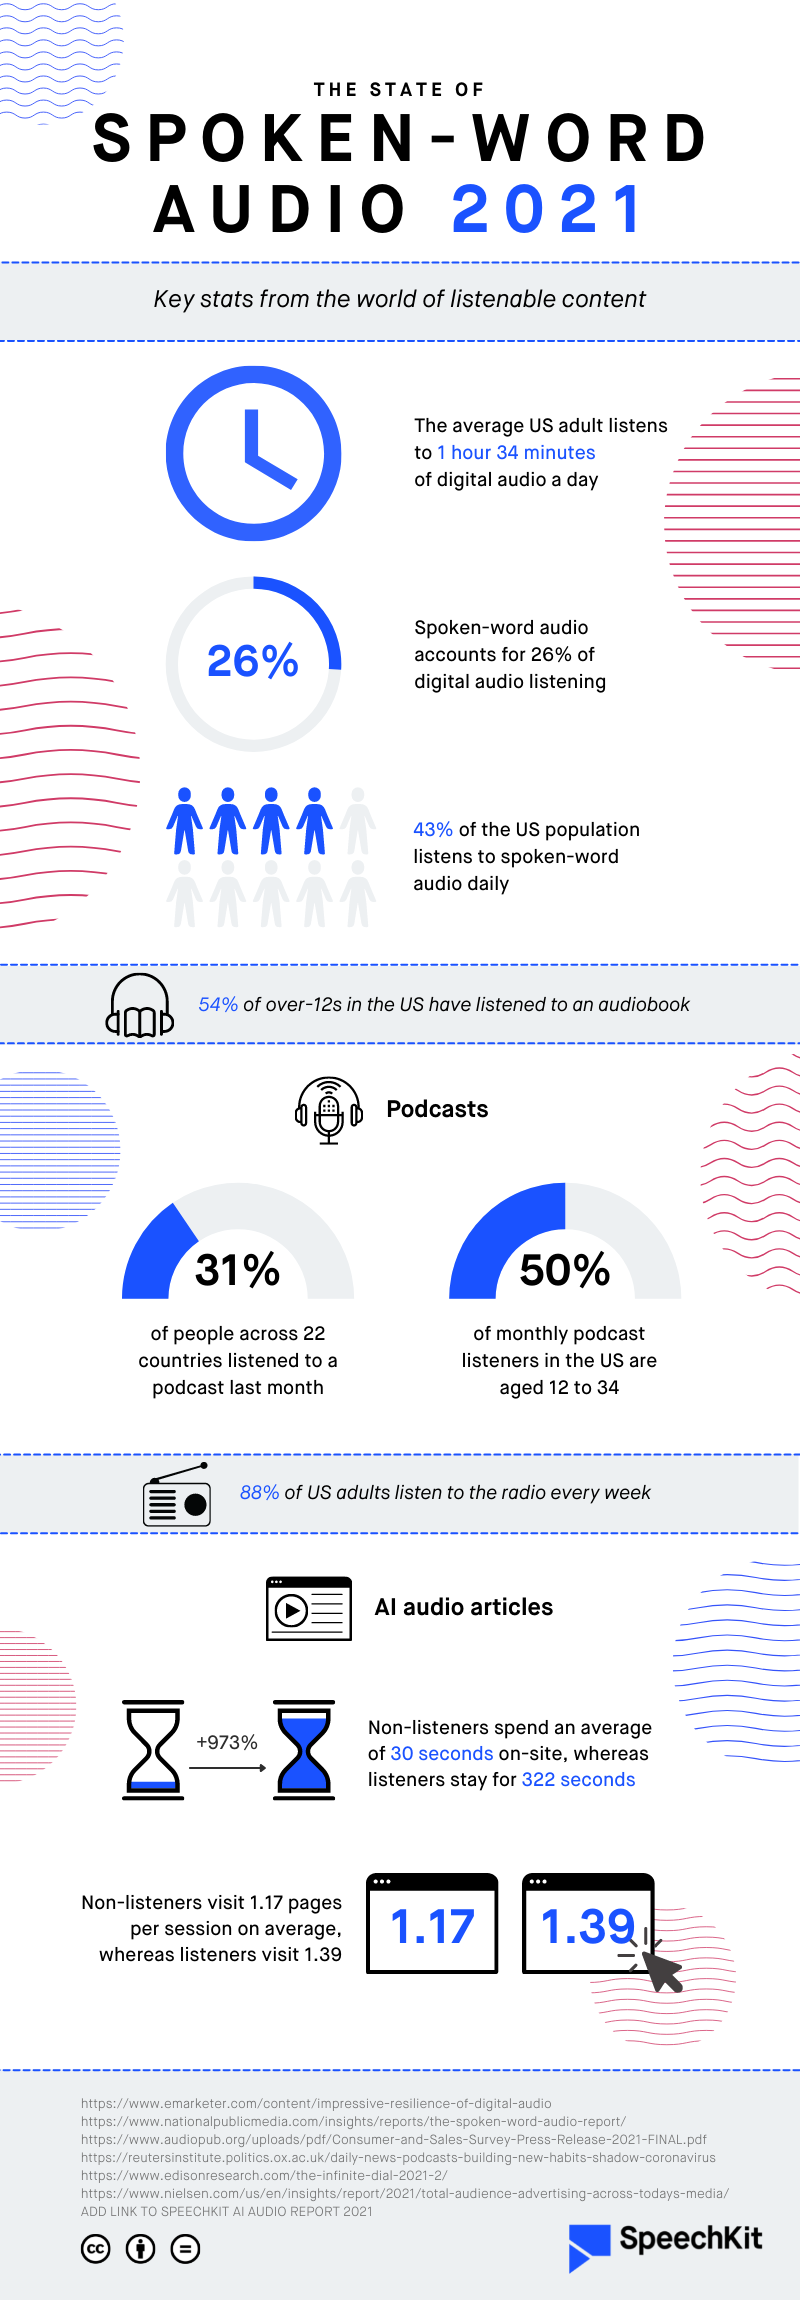 The State of Spoken-Word Audio 2021 - infographic by SpeechKit